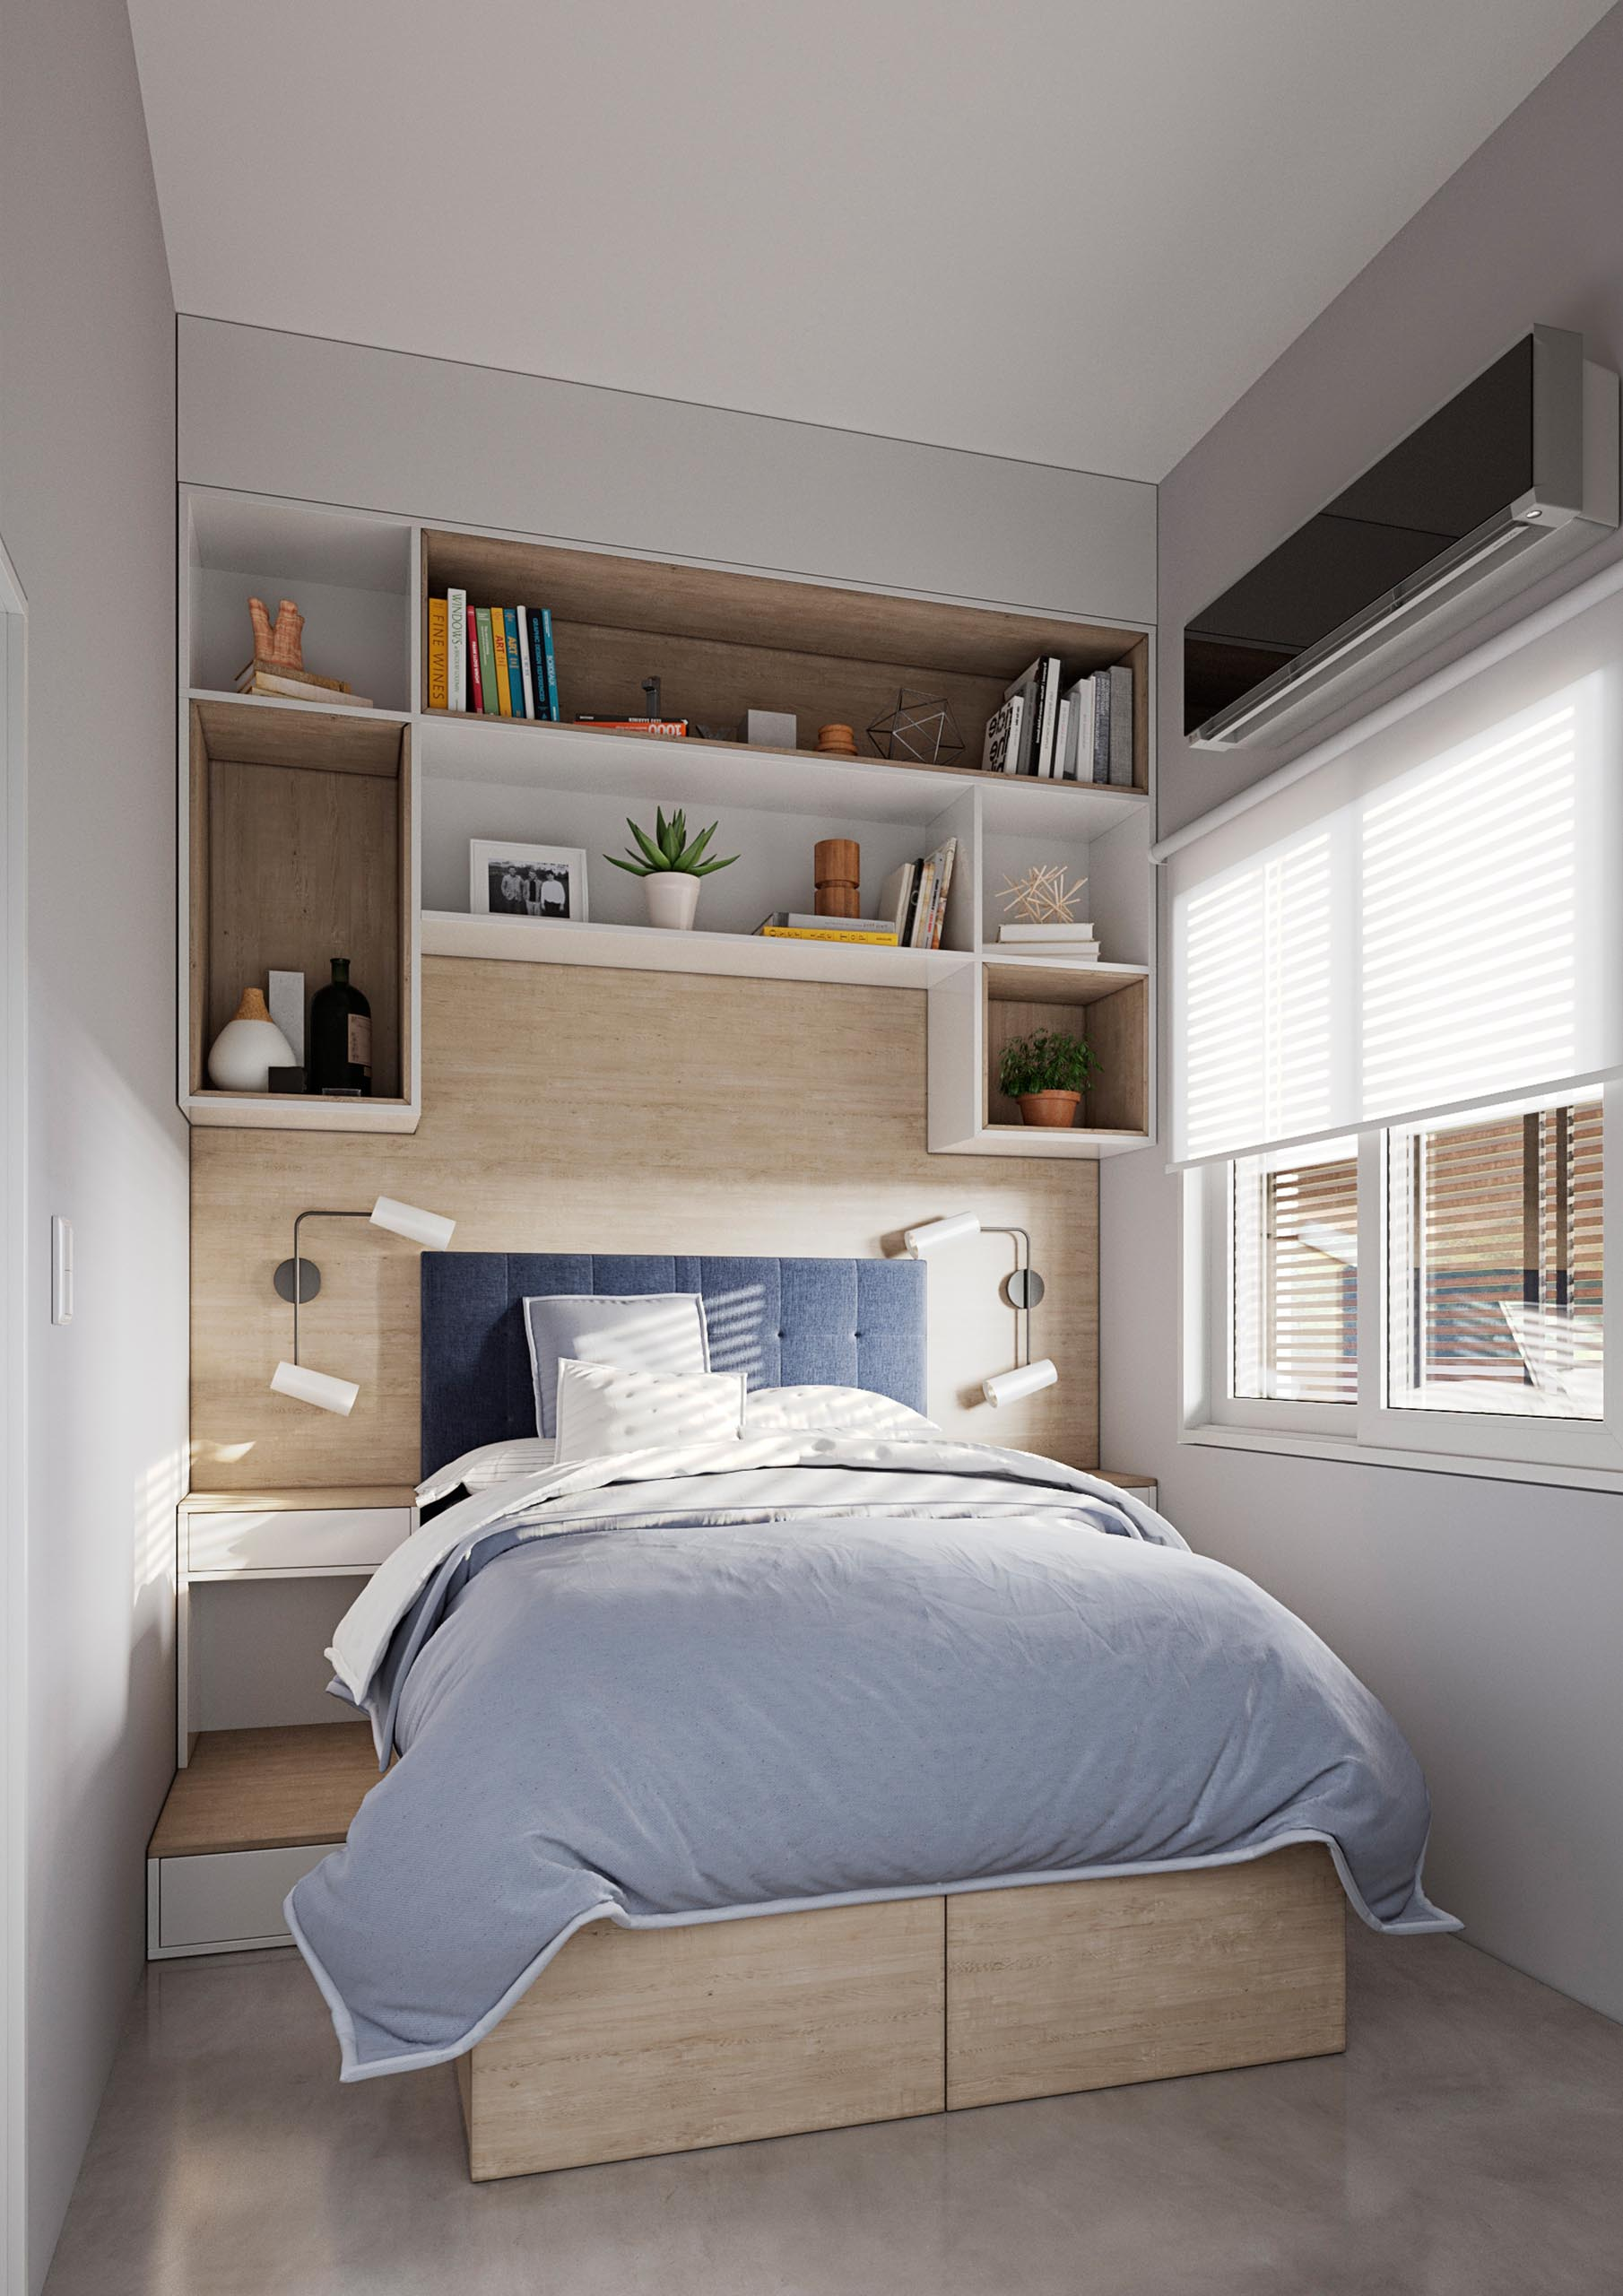 A tiny home bedroom with wood accents, white cabinetry, and storage under the bed.